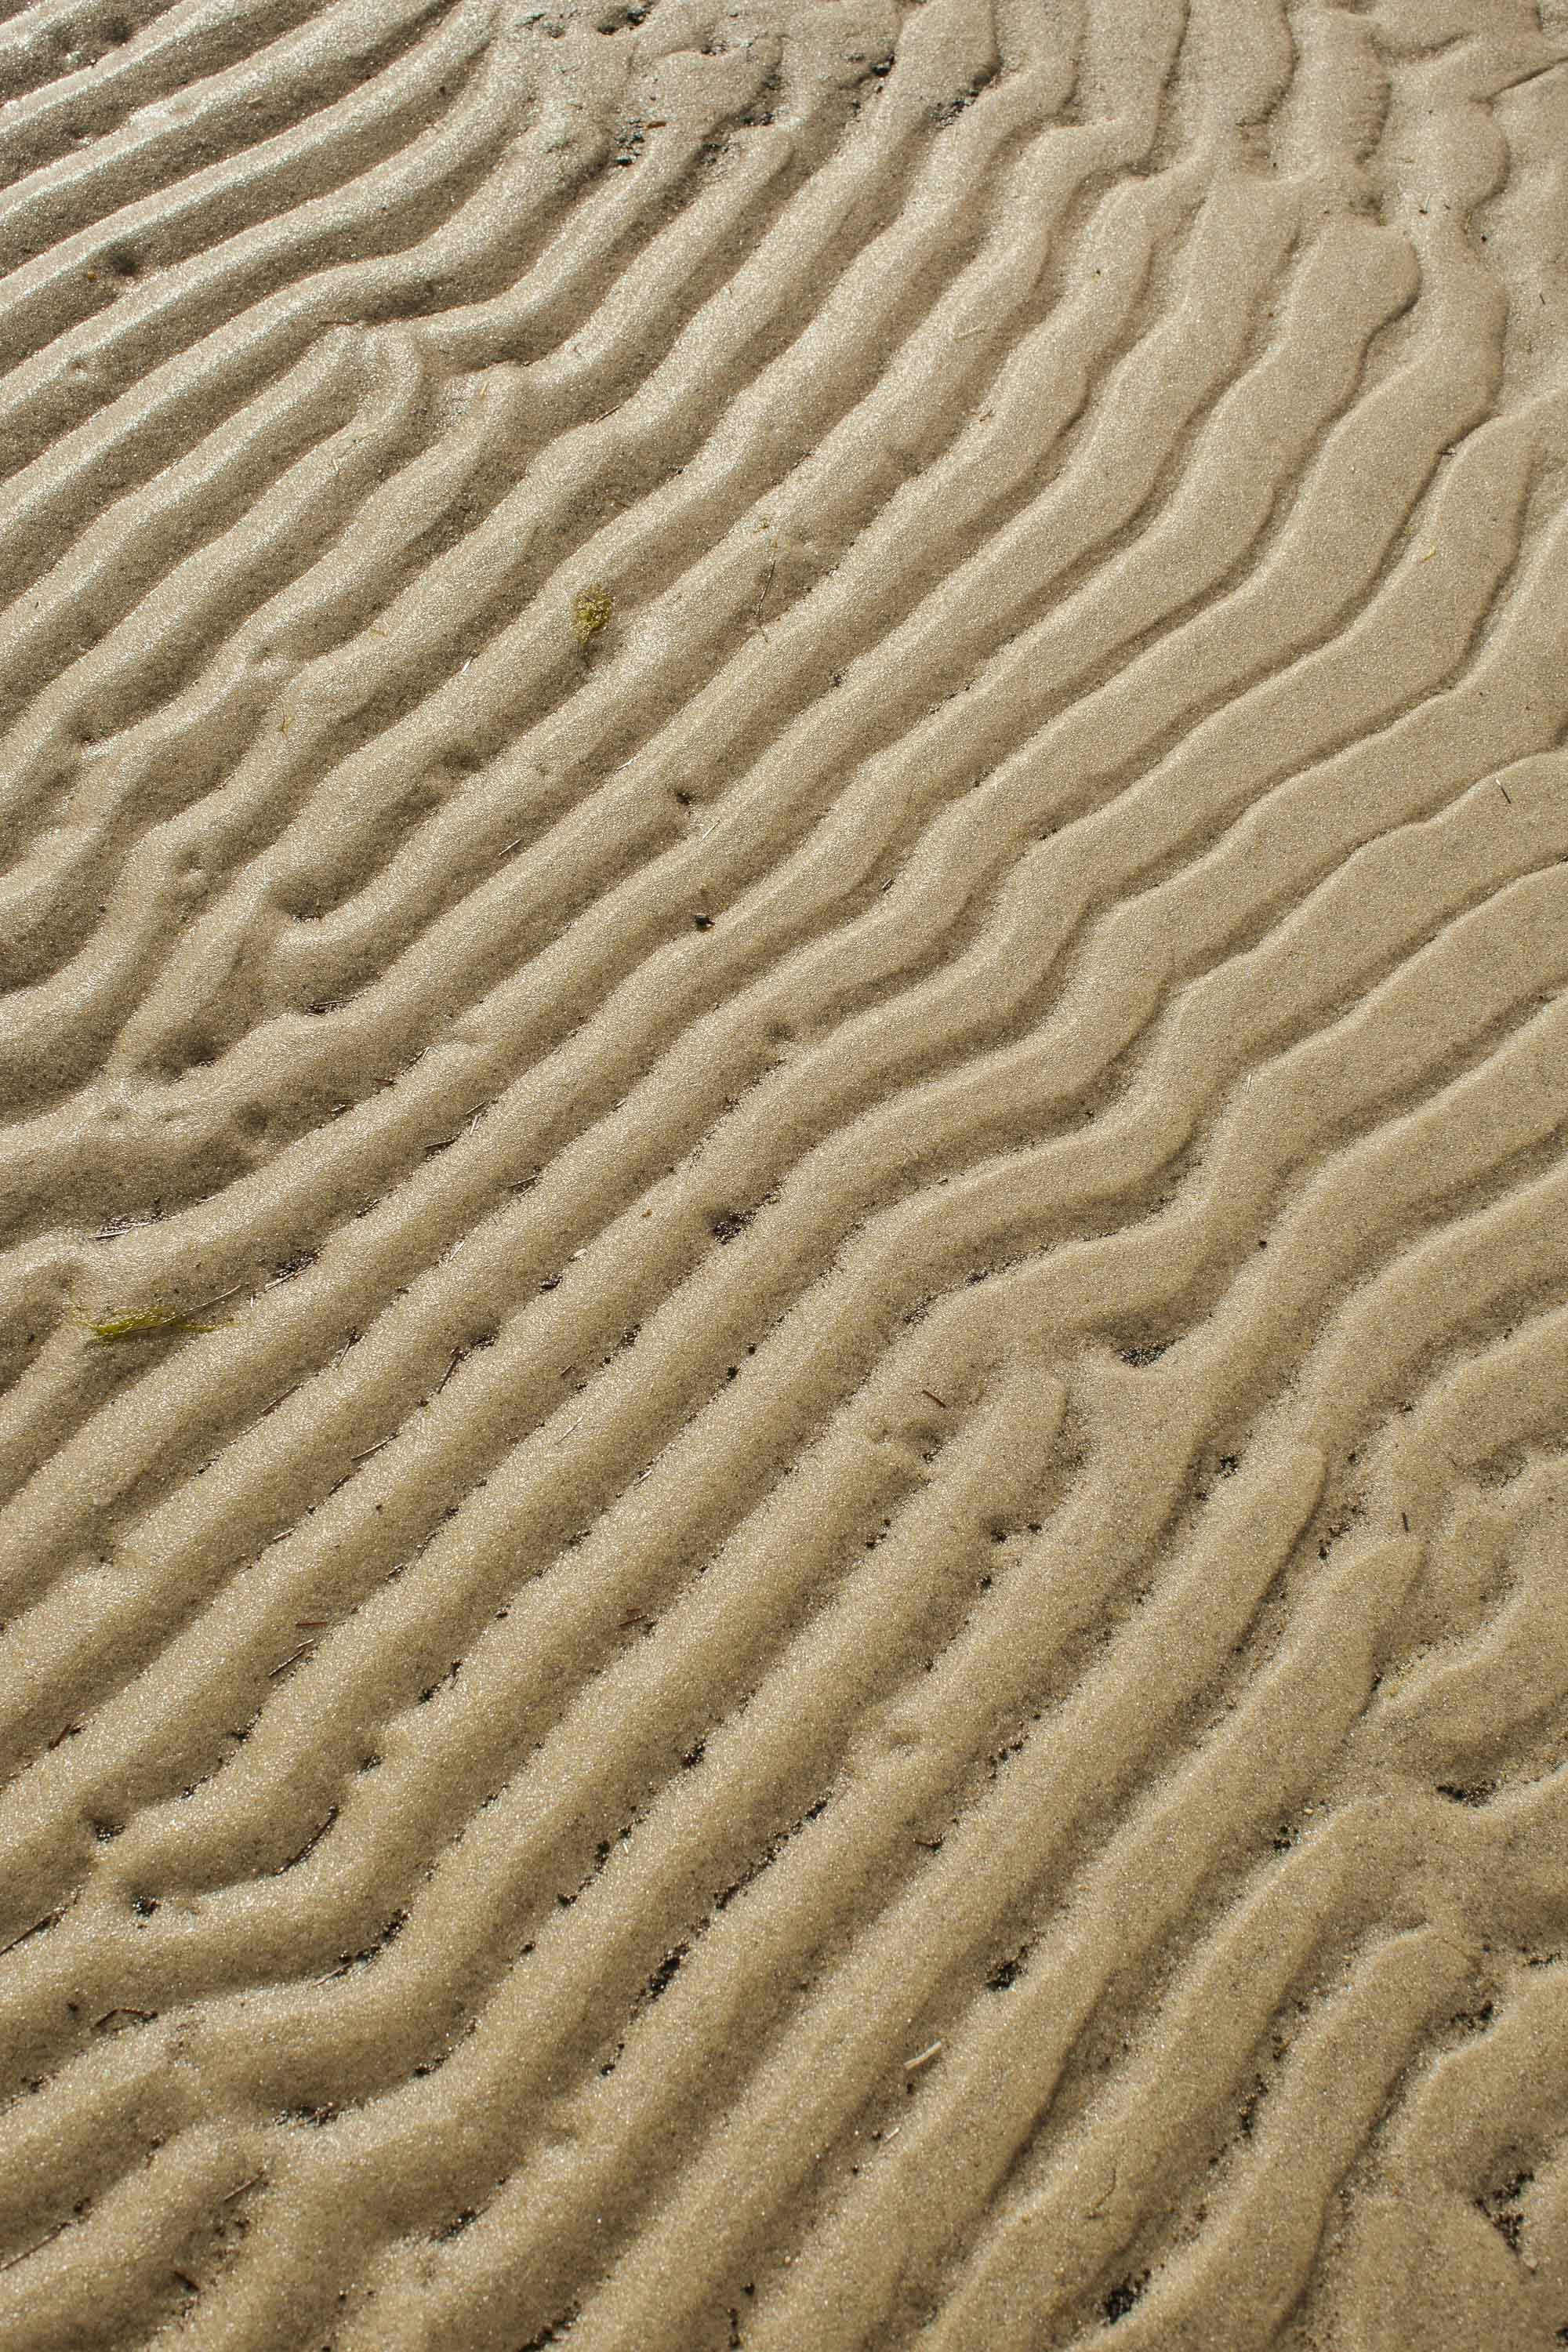 Ripples in the sand left by wave action are visible at low tide.